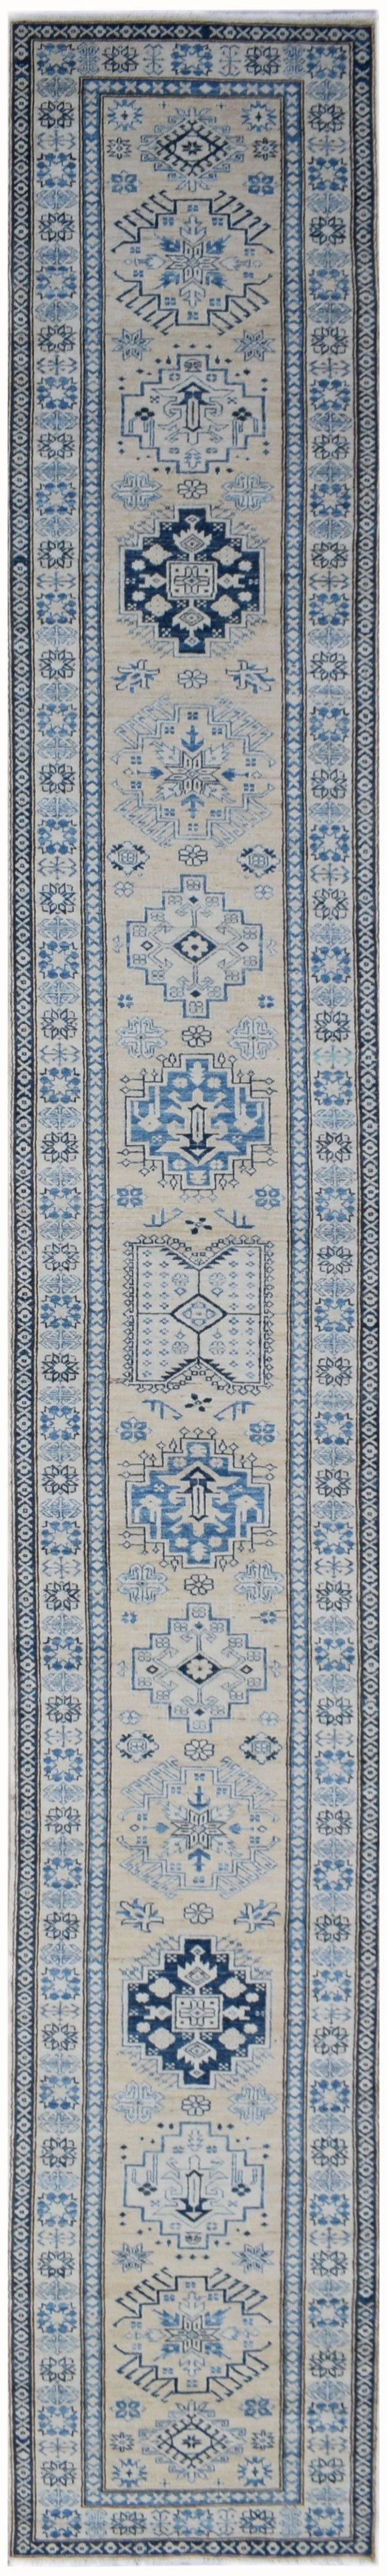 Handmade Sultan Collection Hallway Runner | 481 x 82 cm | 19'1